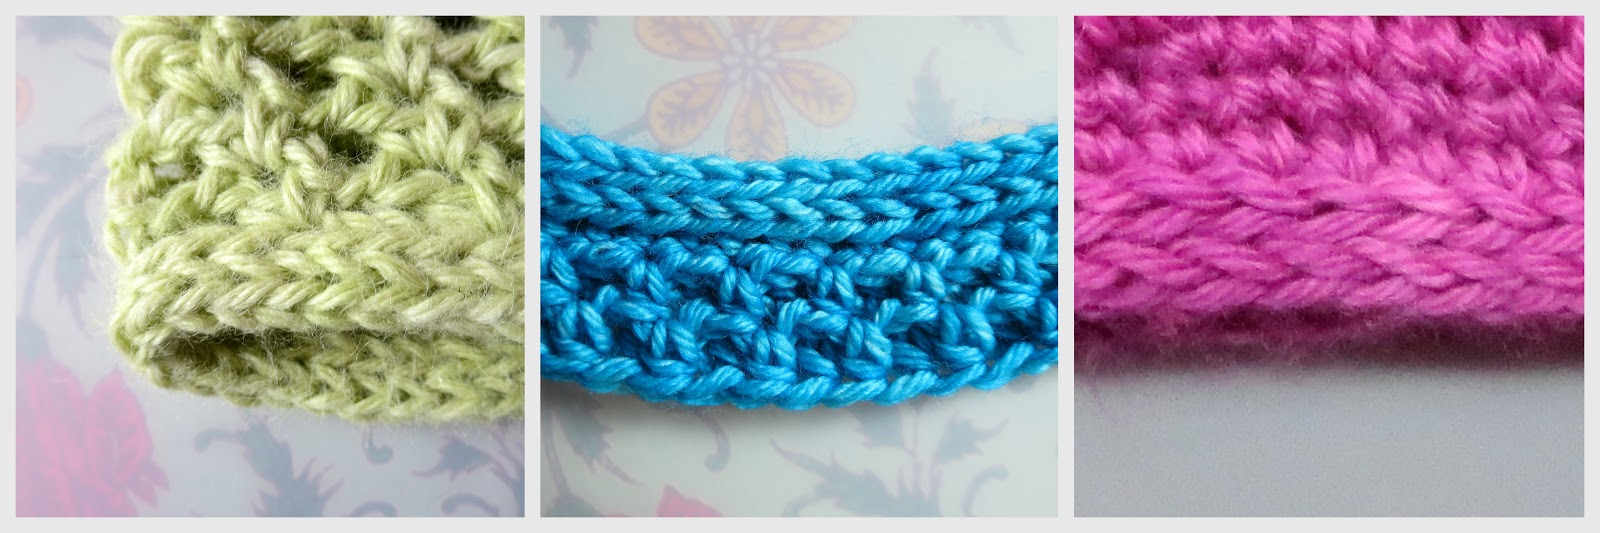 Methods of creating a pattern of crochet and columns - a magnificent pattern by your own hands